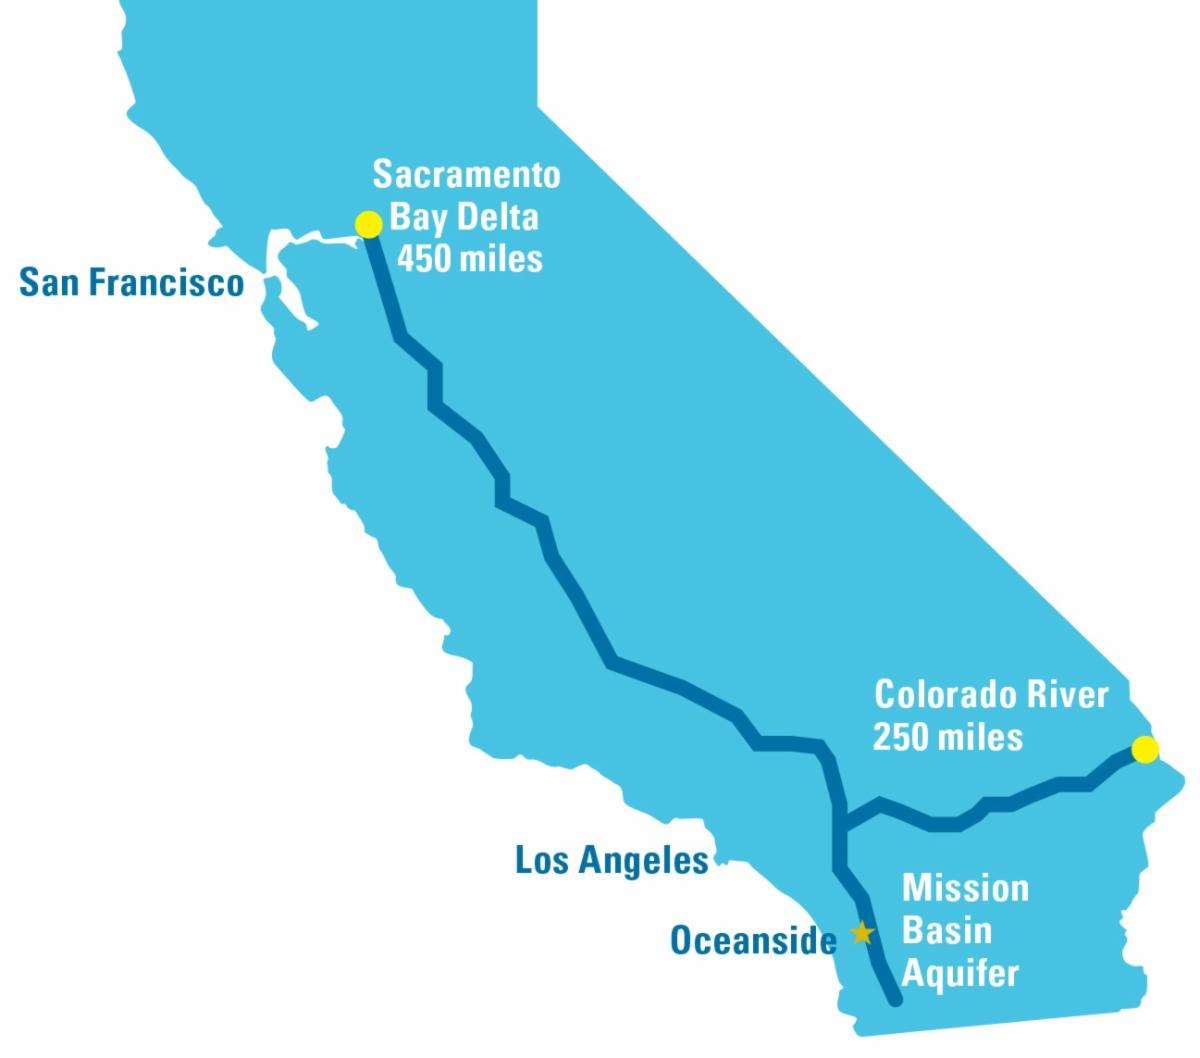 Map of California showing hundreds of miles needed to import water from Colorado River and Sacremento Bay Delta.